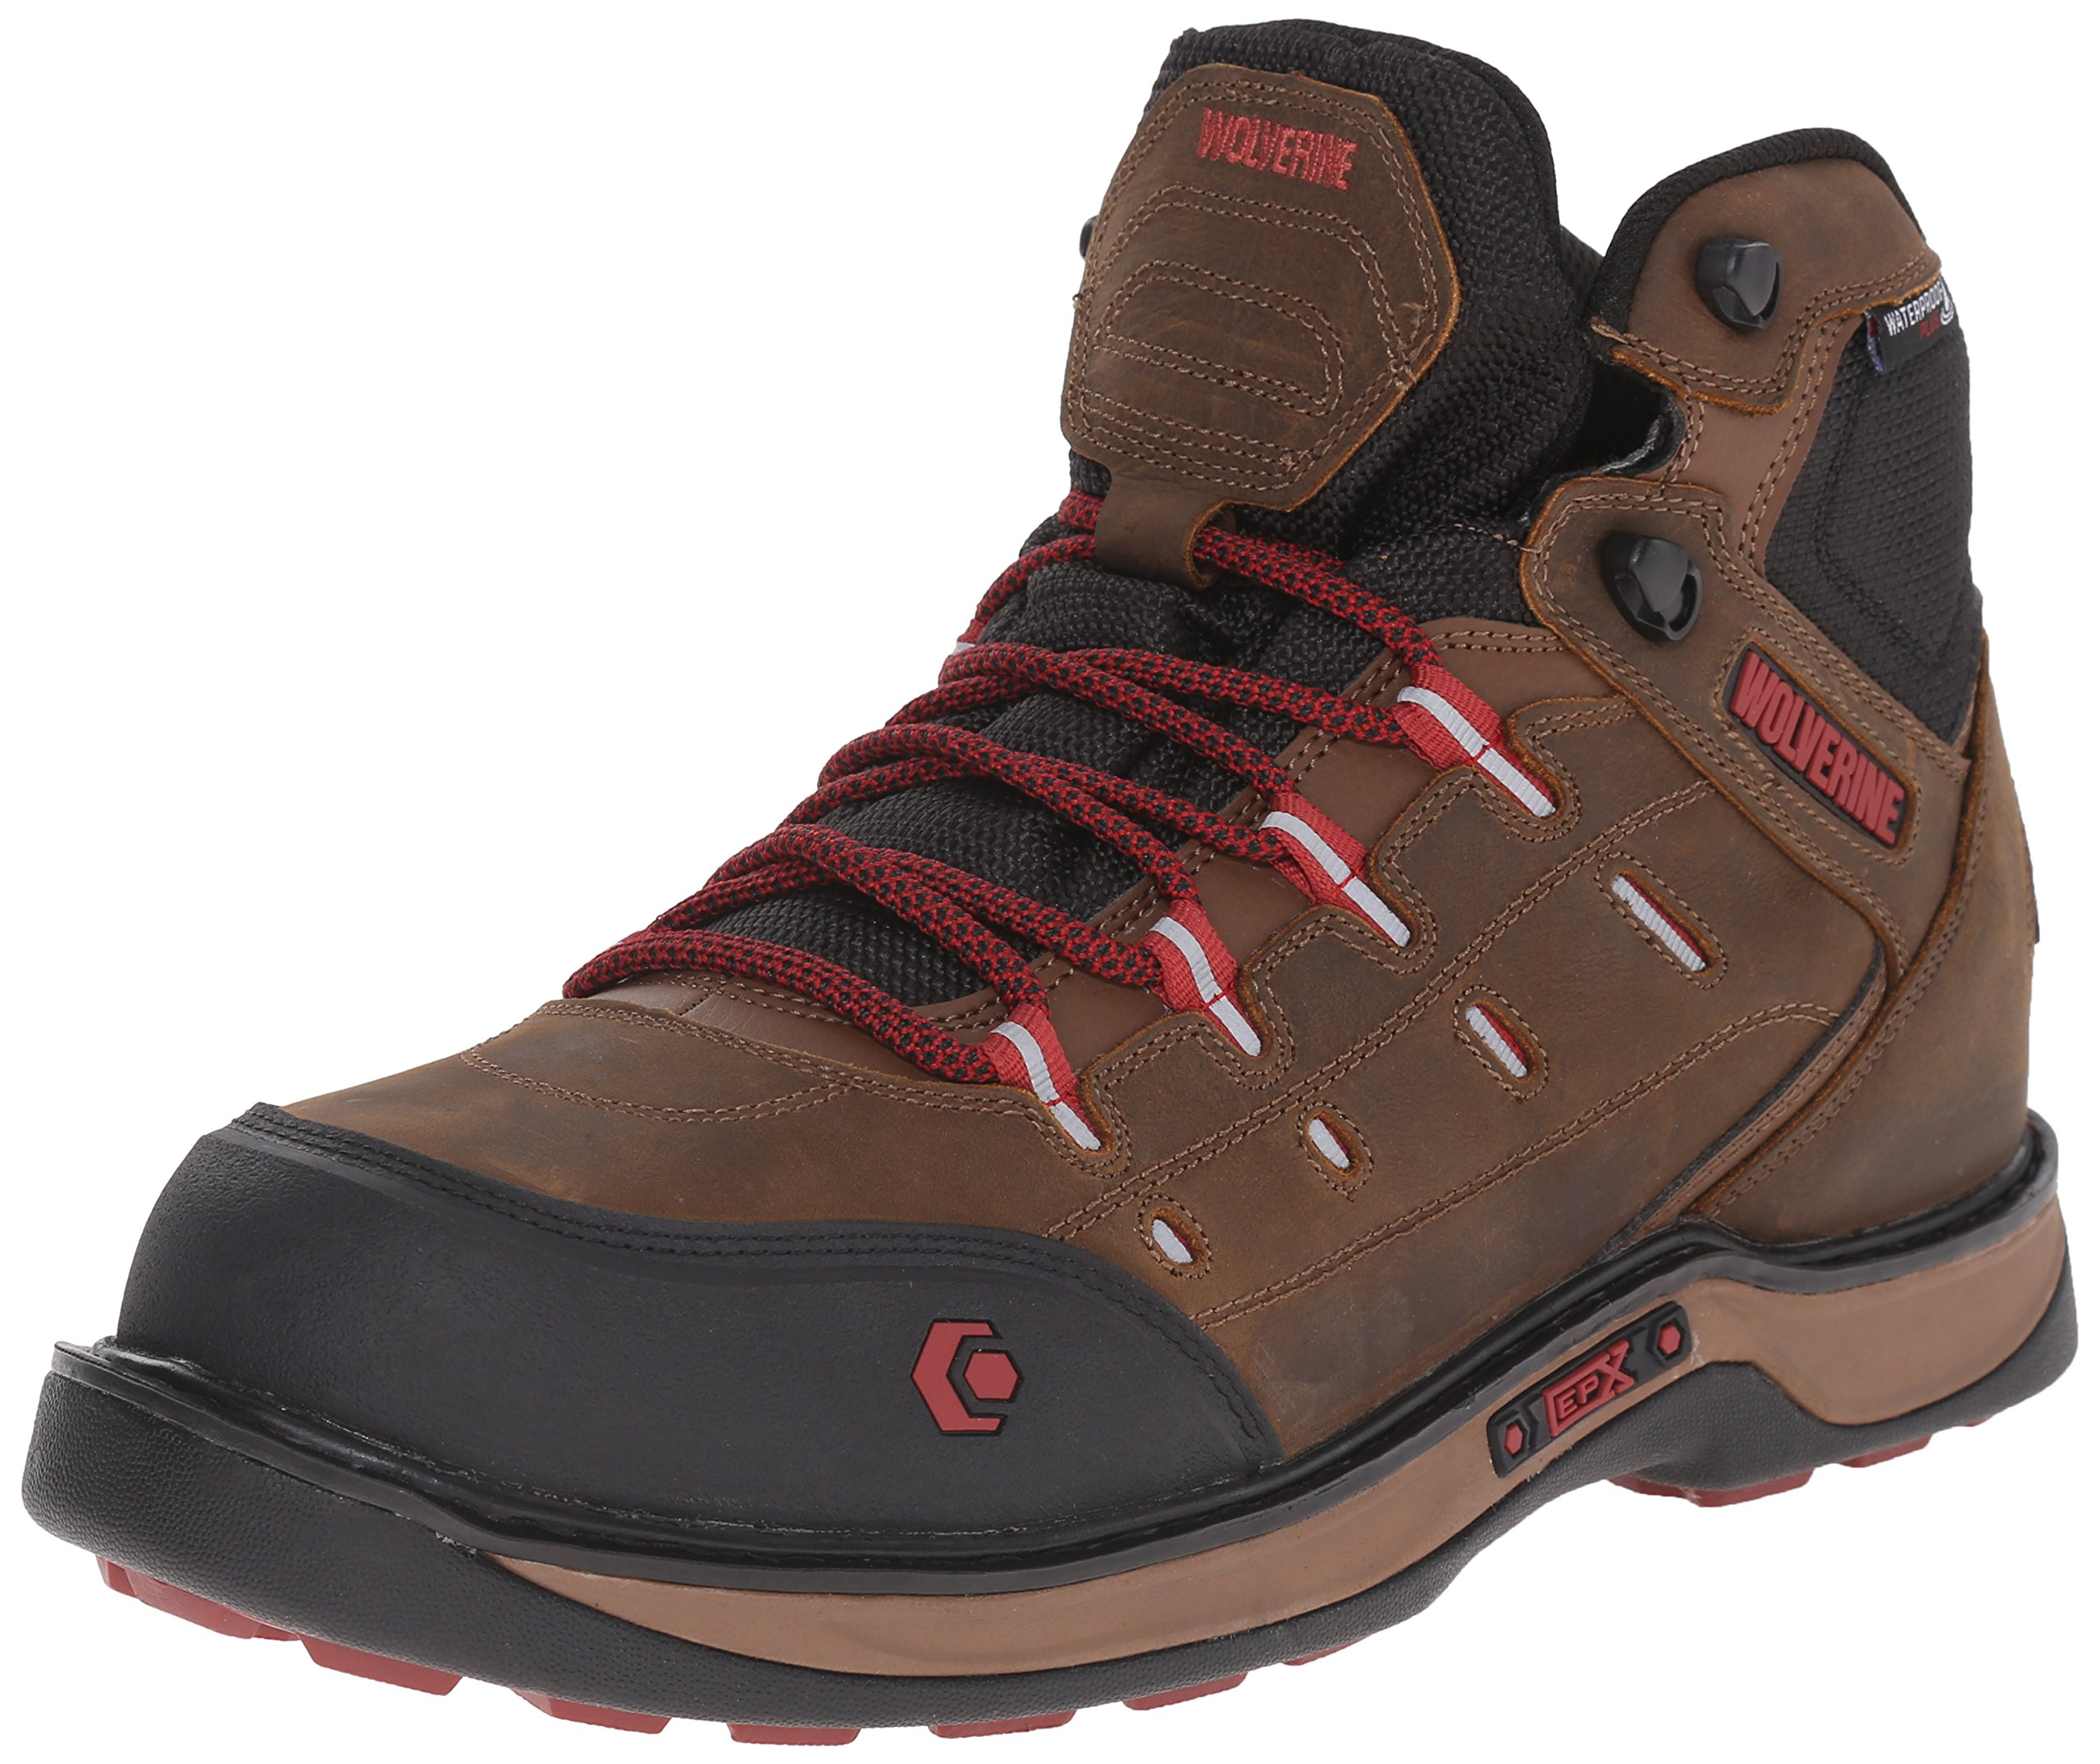 Wolverine Men's Edge LX Nano Toe Work Boot, Brown/Red, 14 M US